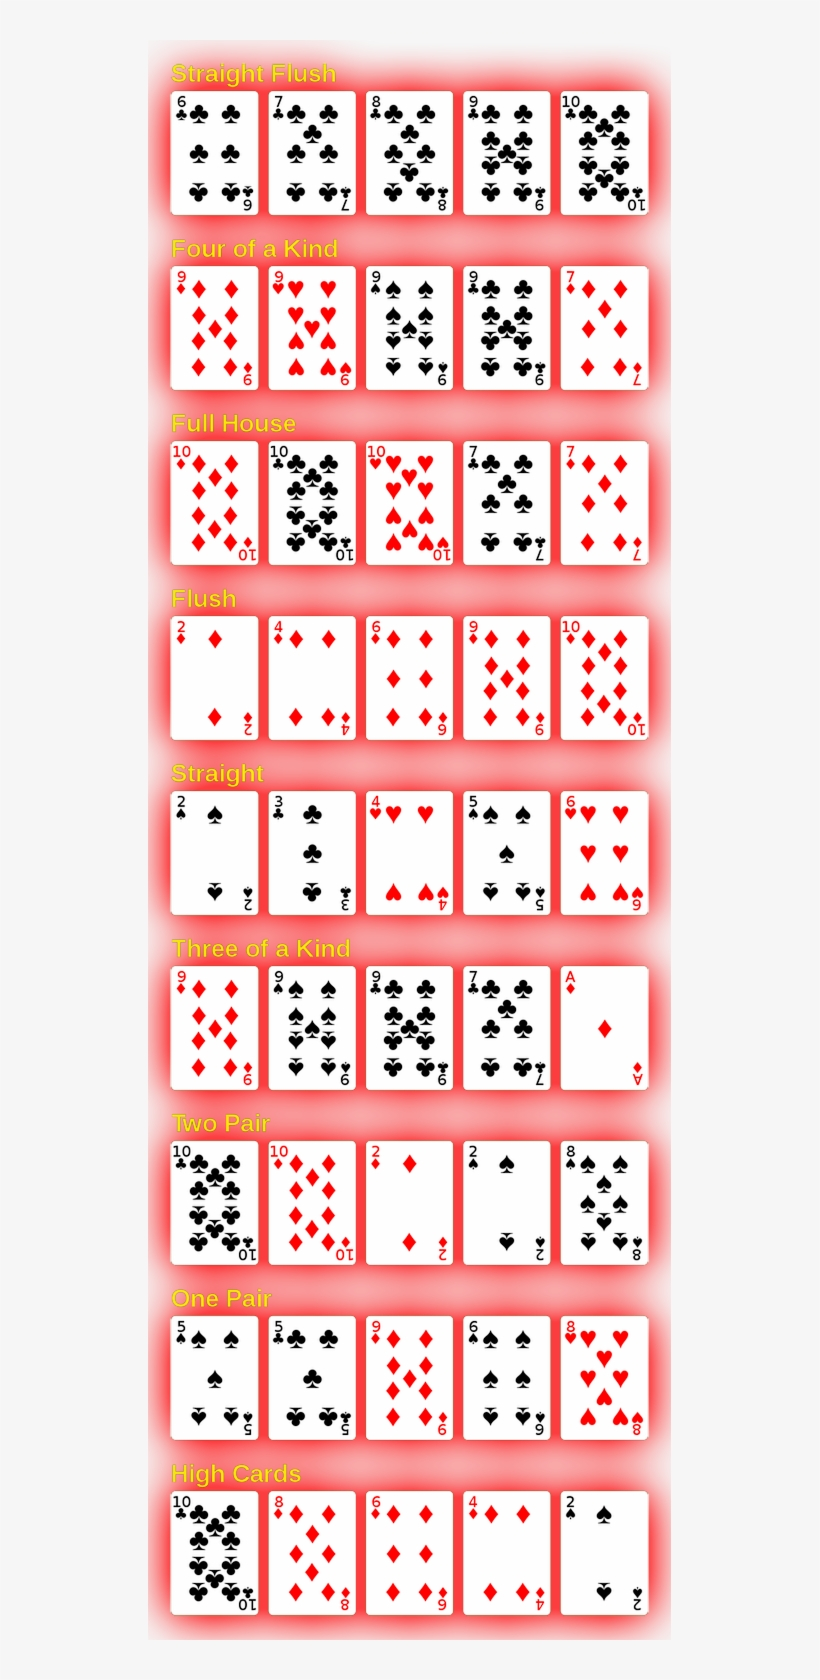 D Poker List Poker Freeroll Password Png Poker Card List Of Poker Hands Png Image Transparent Png Free Download On Seekpng